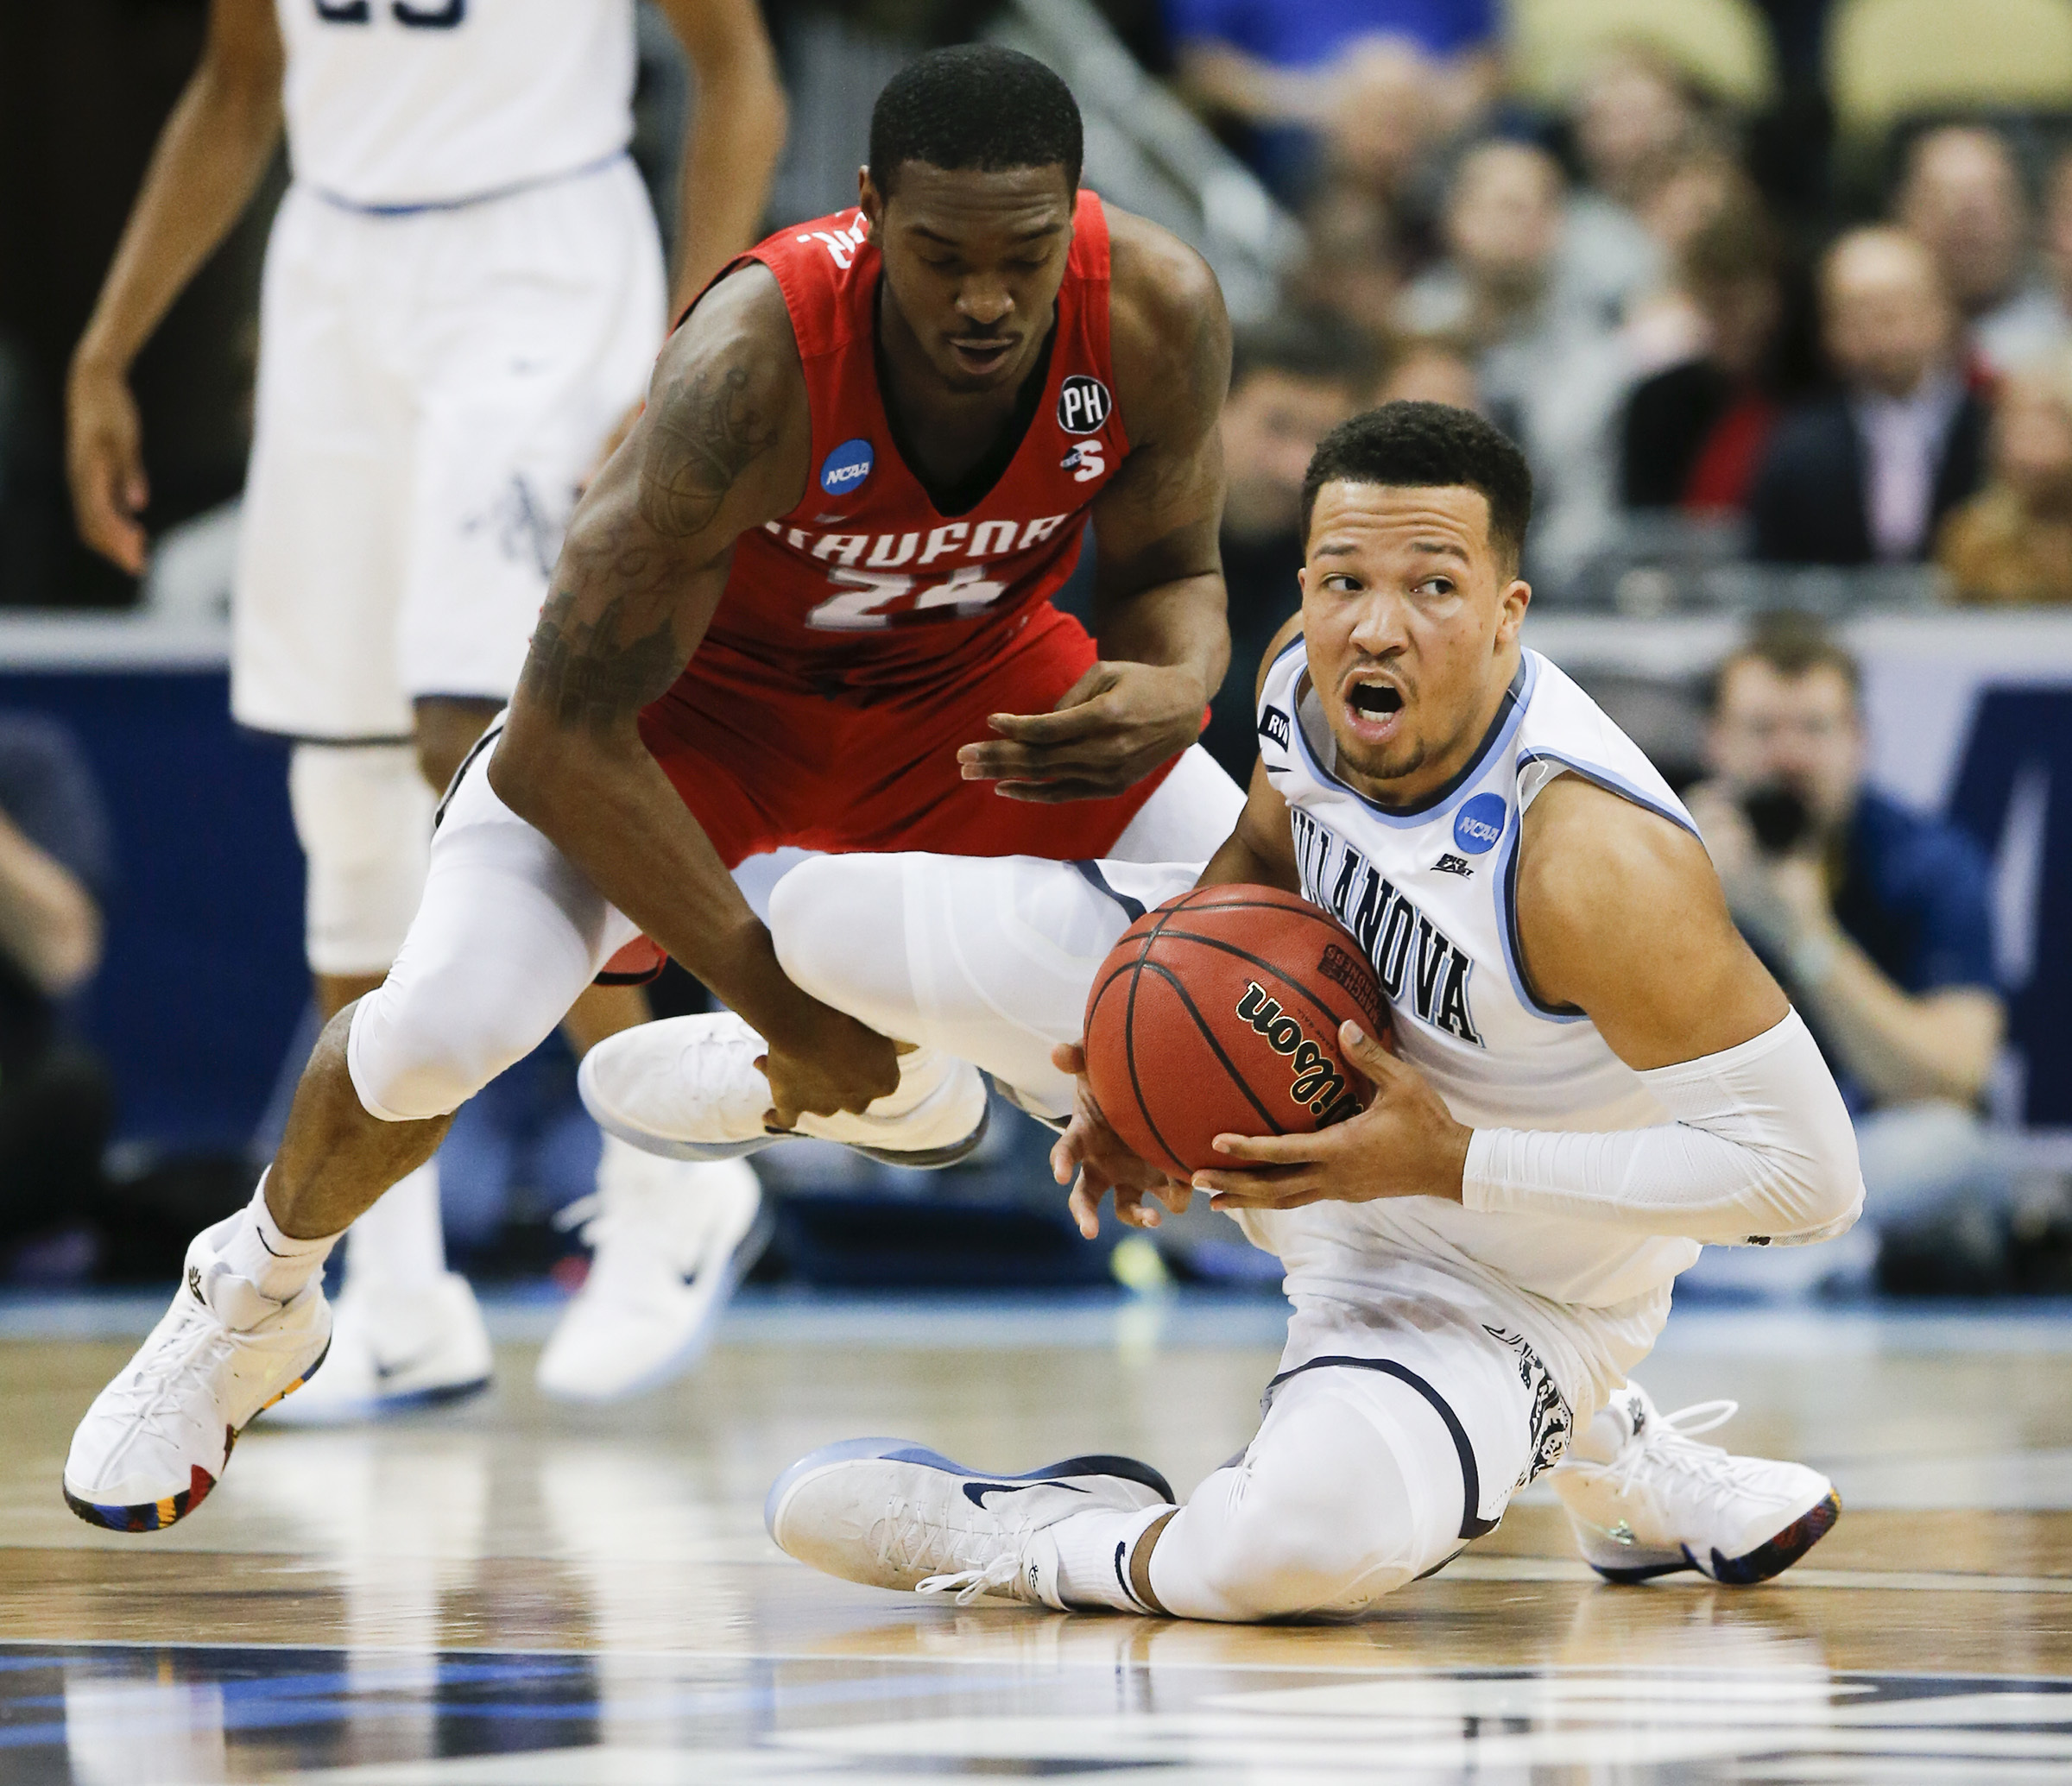 Villanova guard Jalen Brunson grabs the basketball past Radford forward Ed Polite Jr., during the second-half in the first round of the NCAA Men´s Basketball Tournament on Thursday, March 15, 2018 at PPG Paints Arena in Pittsburgh. YONG KIM / Staff Photographer